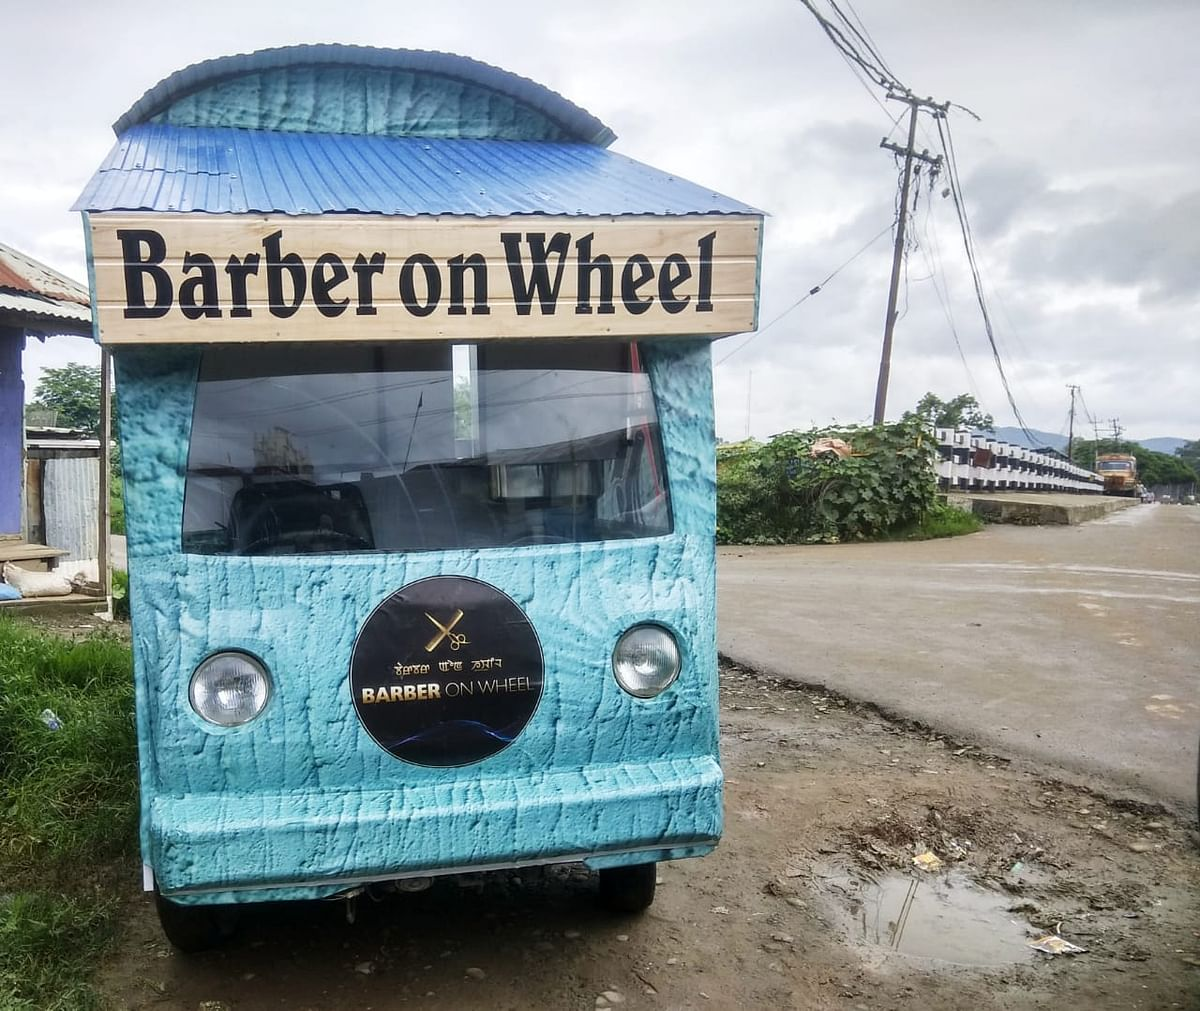 Paonam Sunder Singh and Paonam Prem Singh launched their mobile barbershop 'Barber on Wheel' on July 9